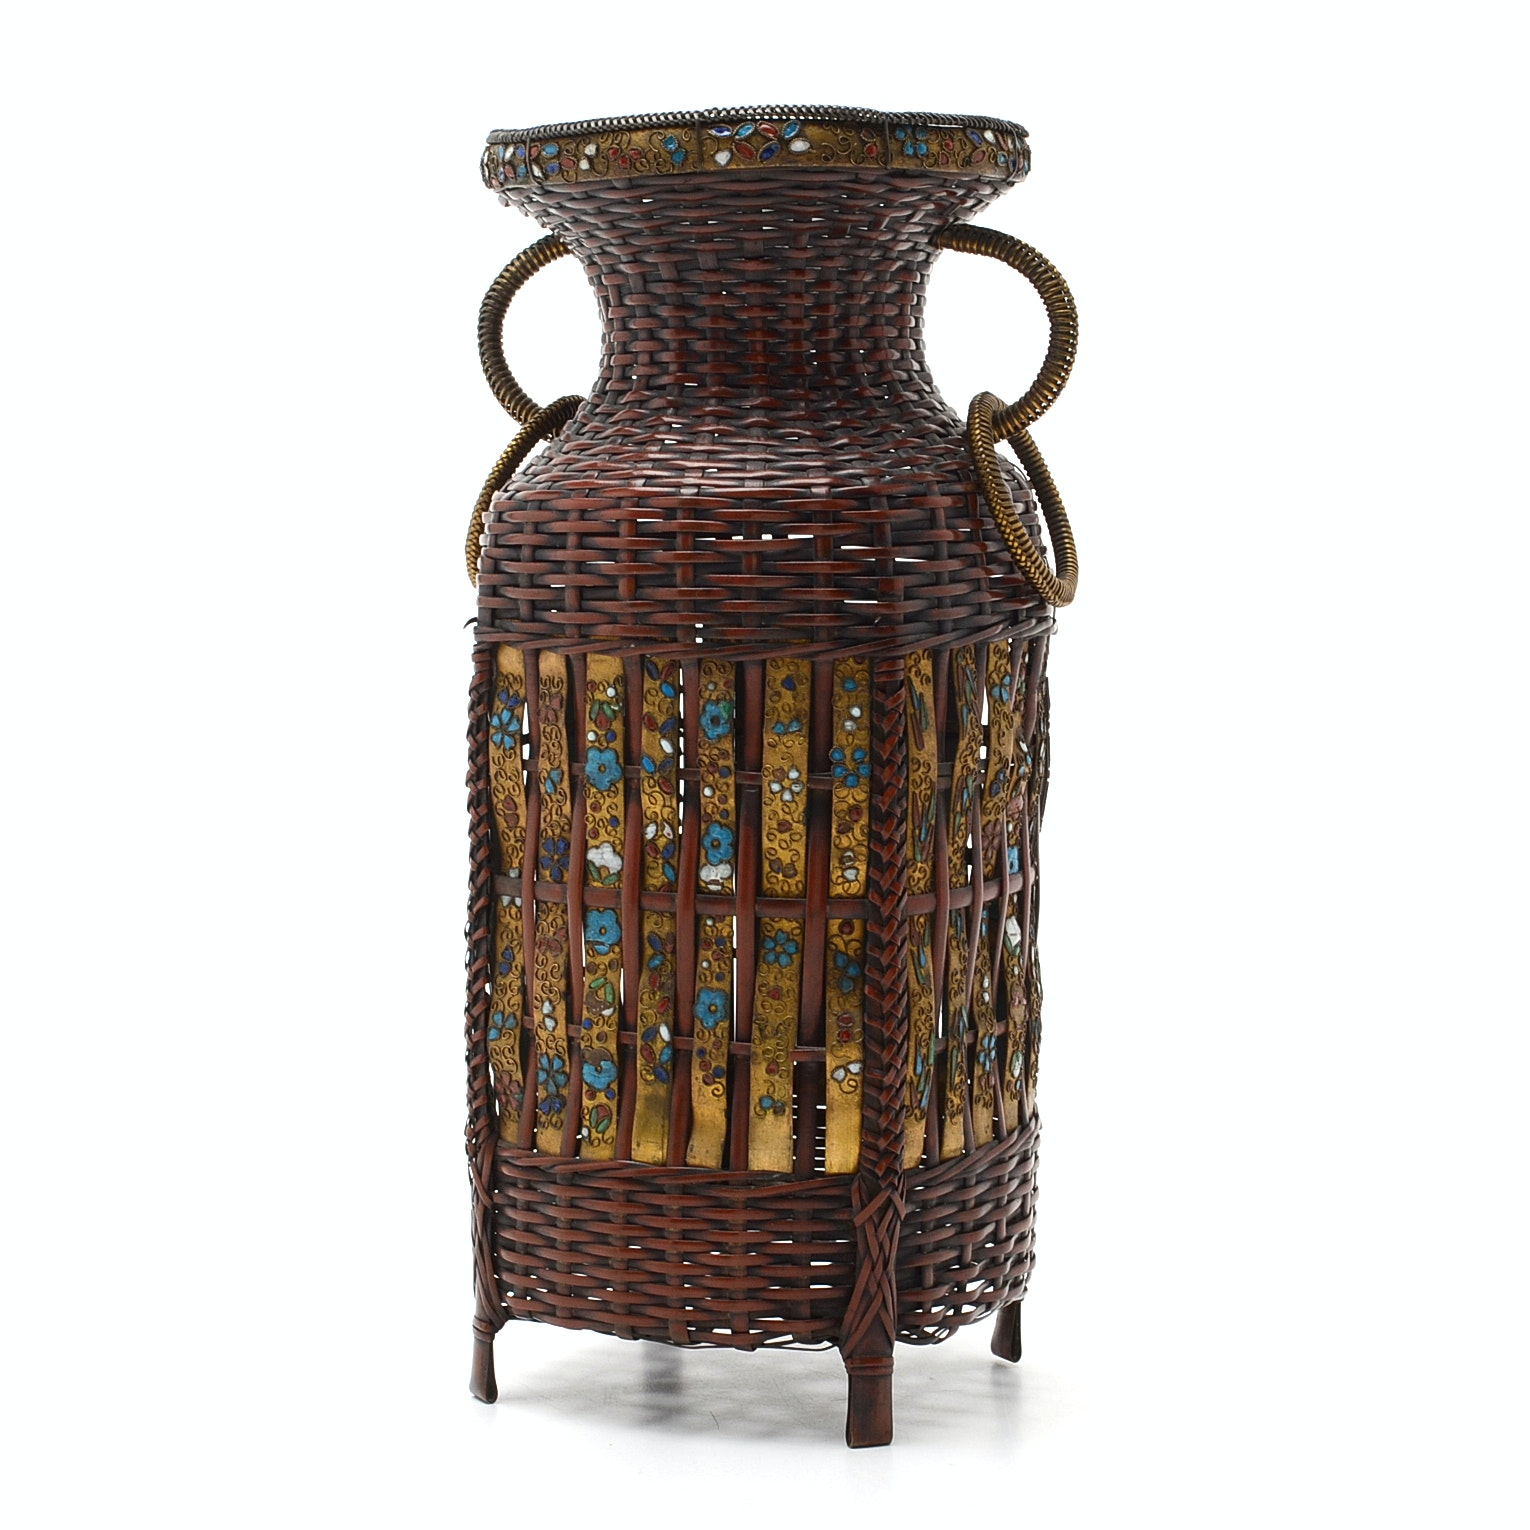 Japanese 20th Century Woven Metal Copper Ikibana Basket with Cloisonne